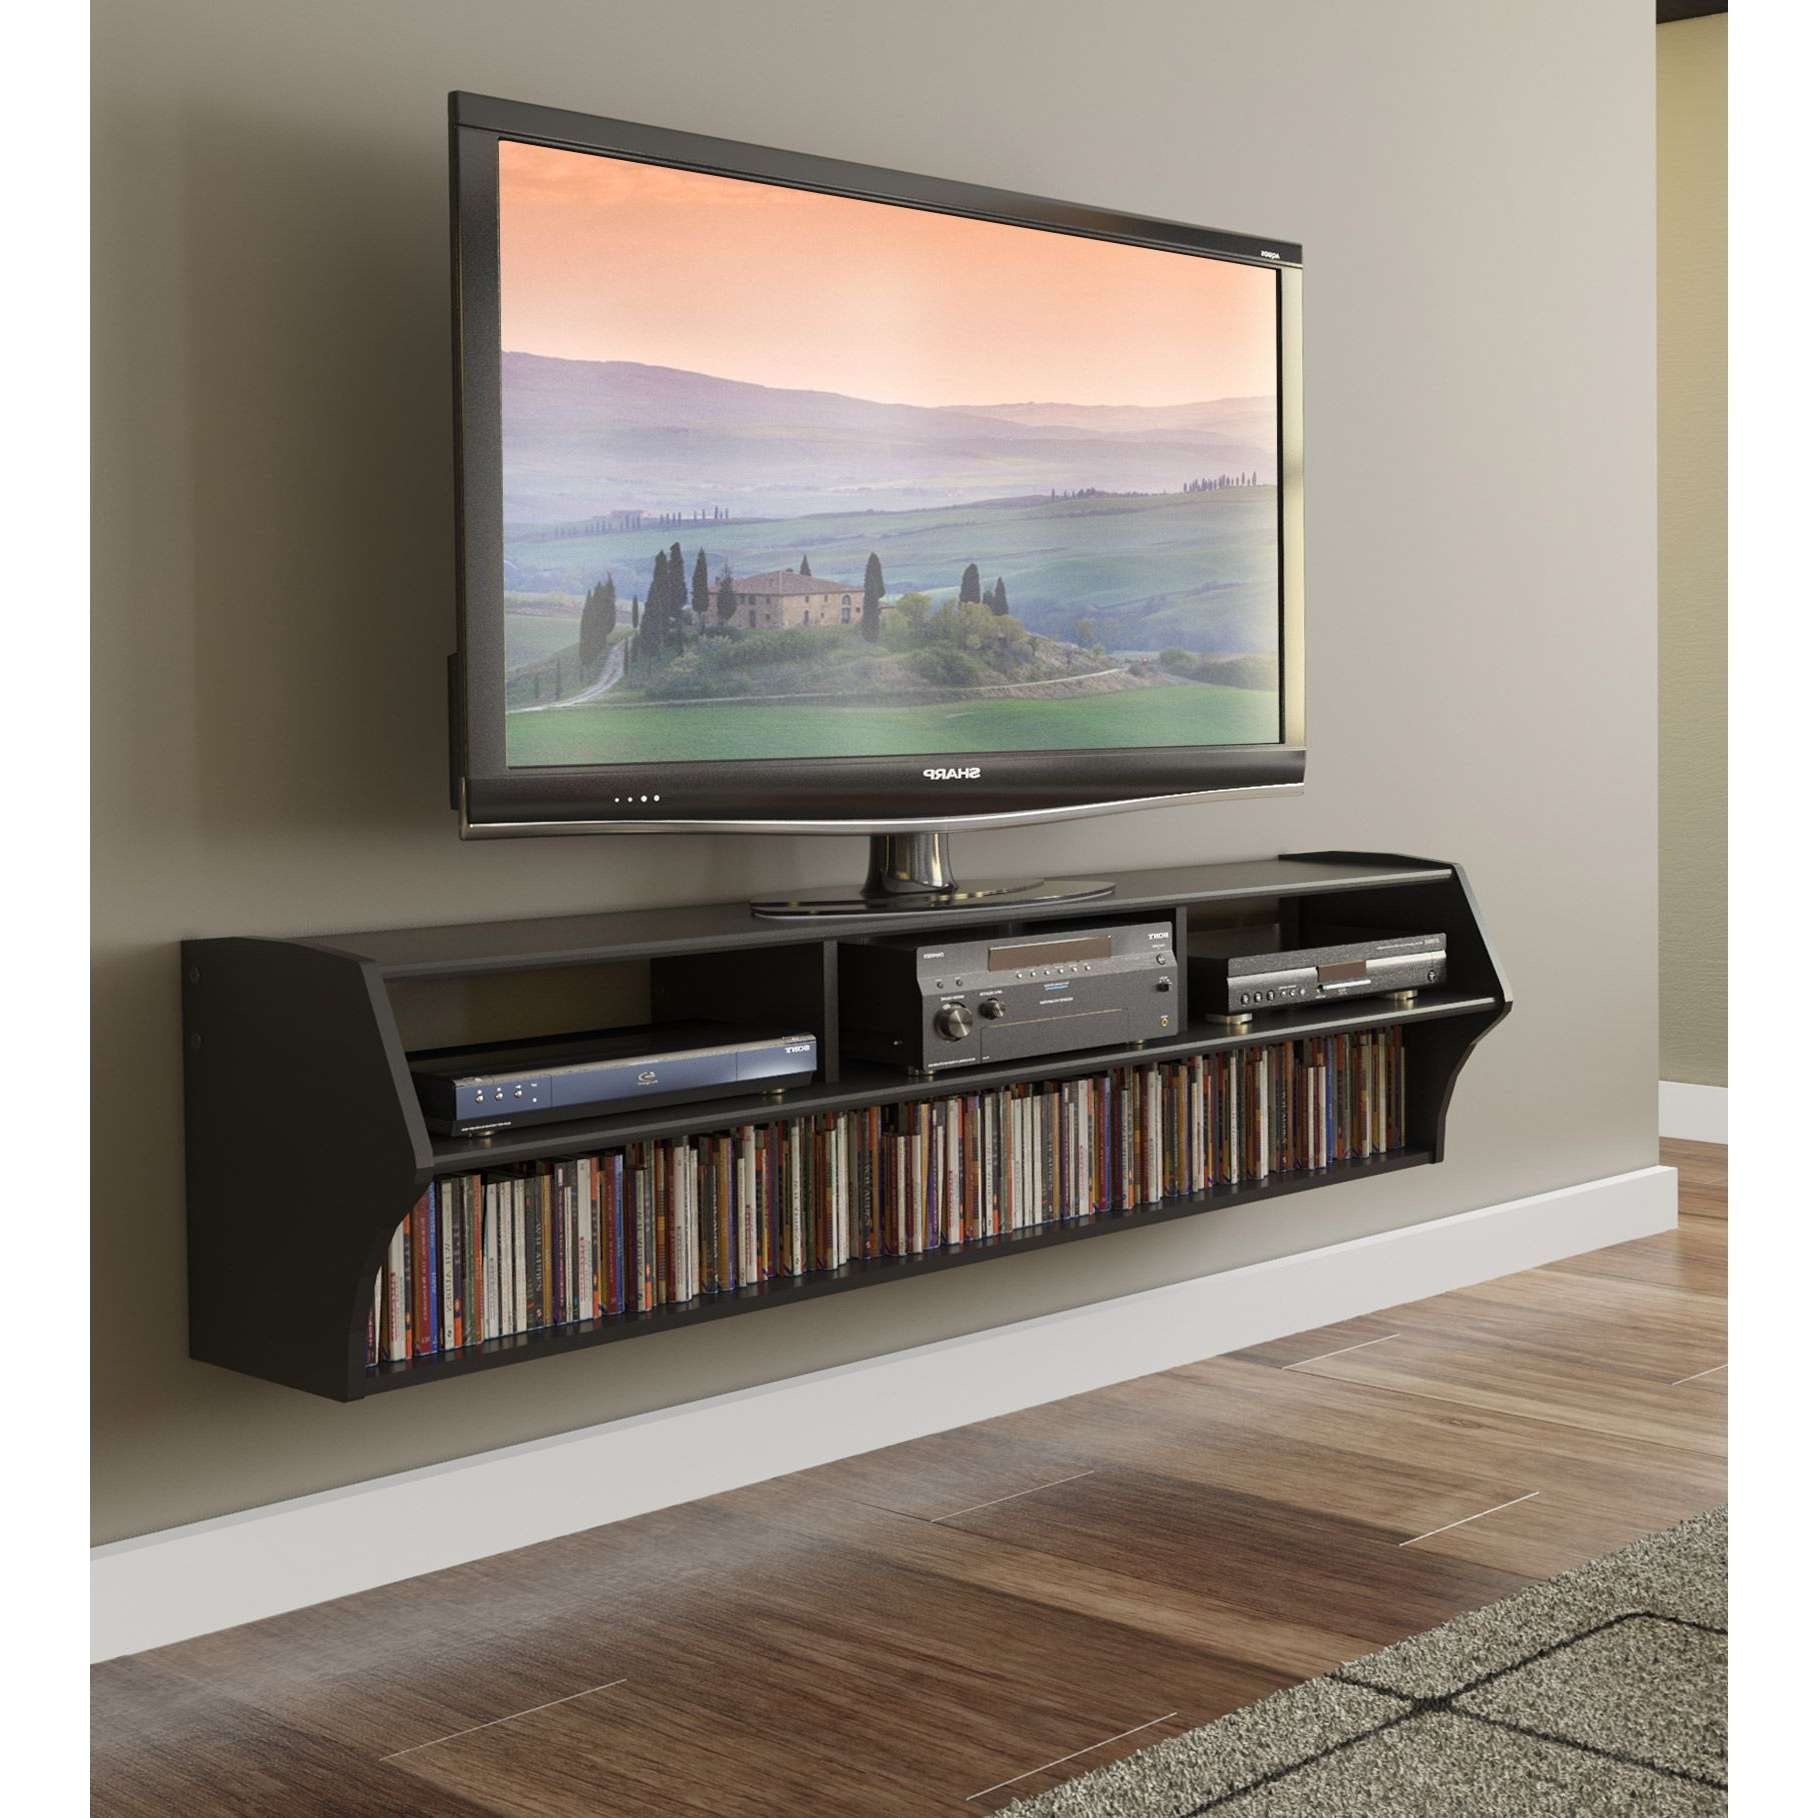 Wall Mounted Tv Entertainment Center Enchanting On Home Decors For Within Wall Mounted Tv Stands For Flat Screens (View 4 of 15)